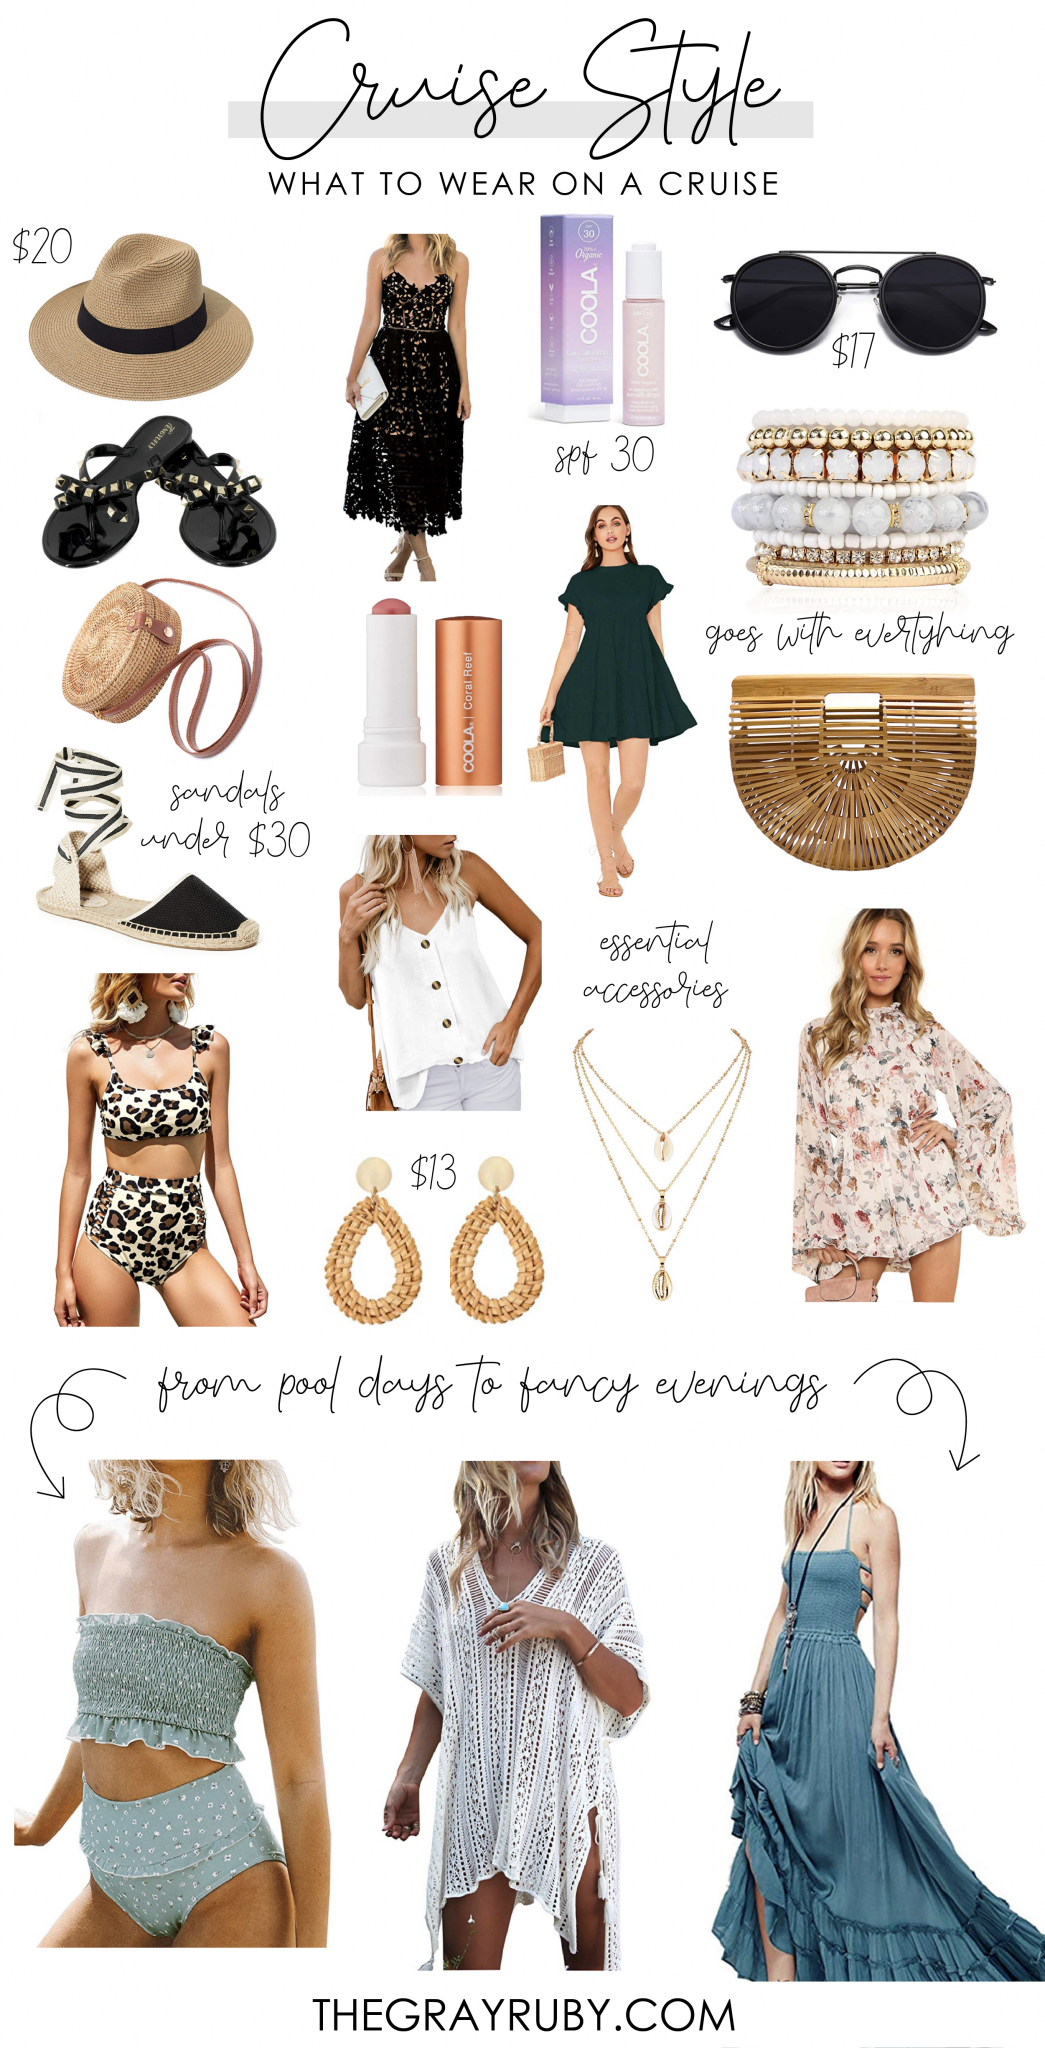 What to wear on a cruise - all of the items you can wear on a cruise during the day or night